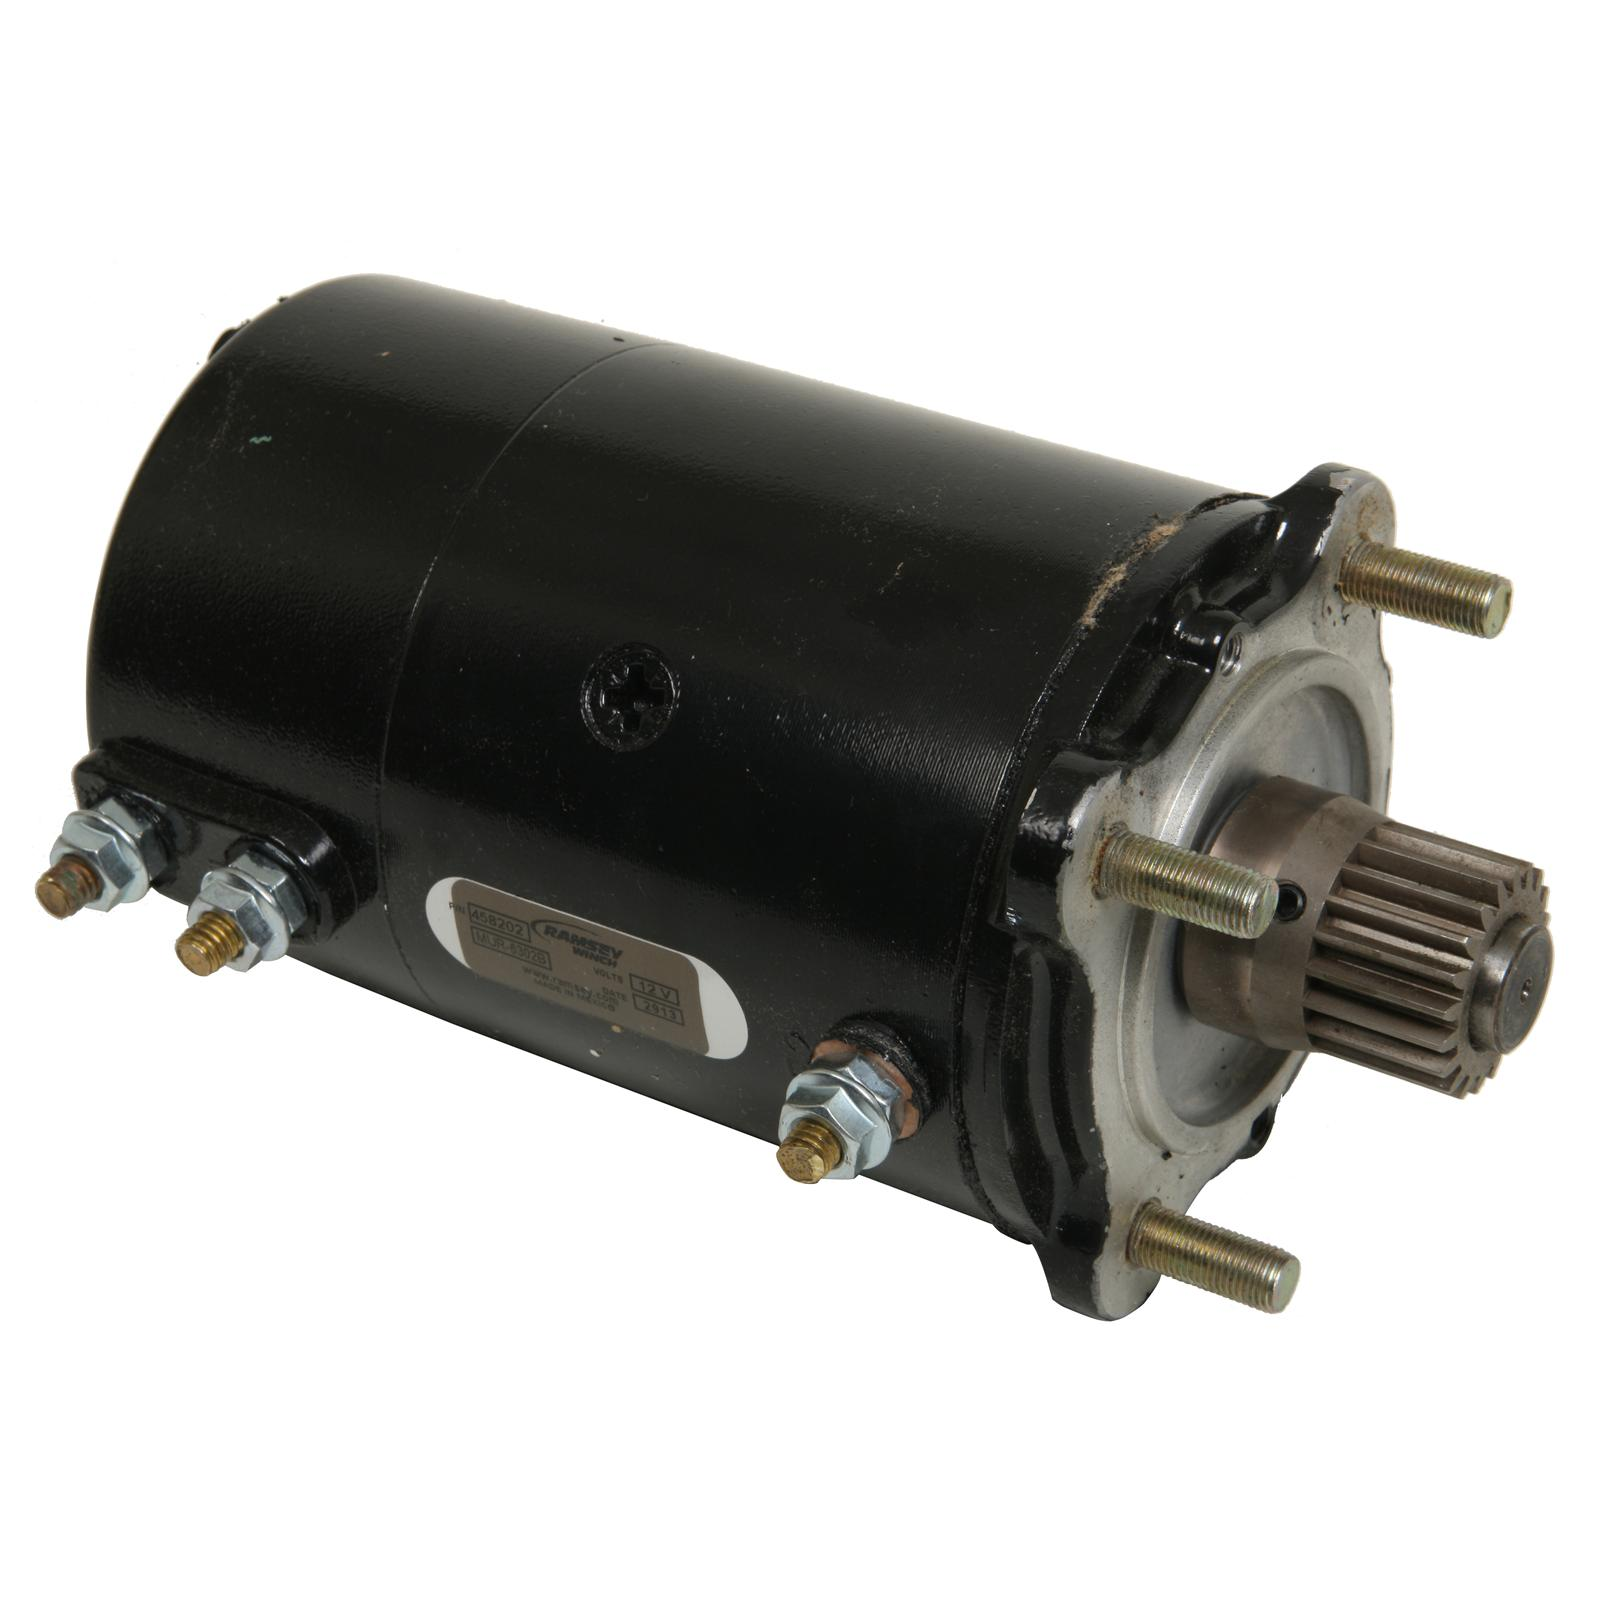 hight resolution of ramsey replacement power drive winch motors 262035 free shipping ramsey winch parts ramsey winch motor wiring diagram